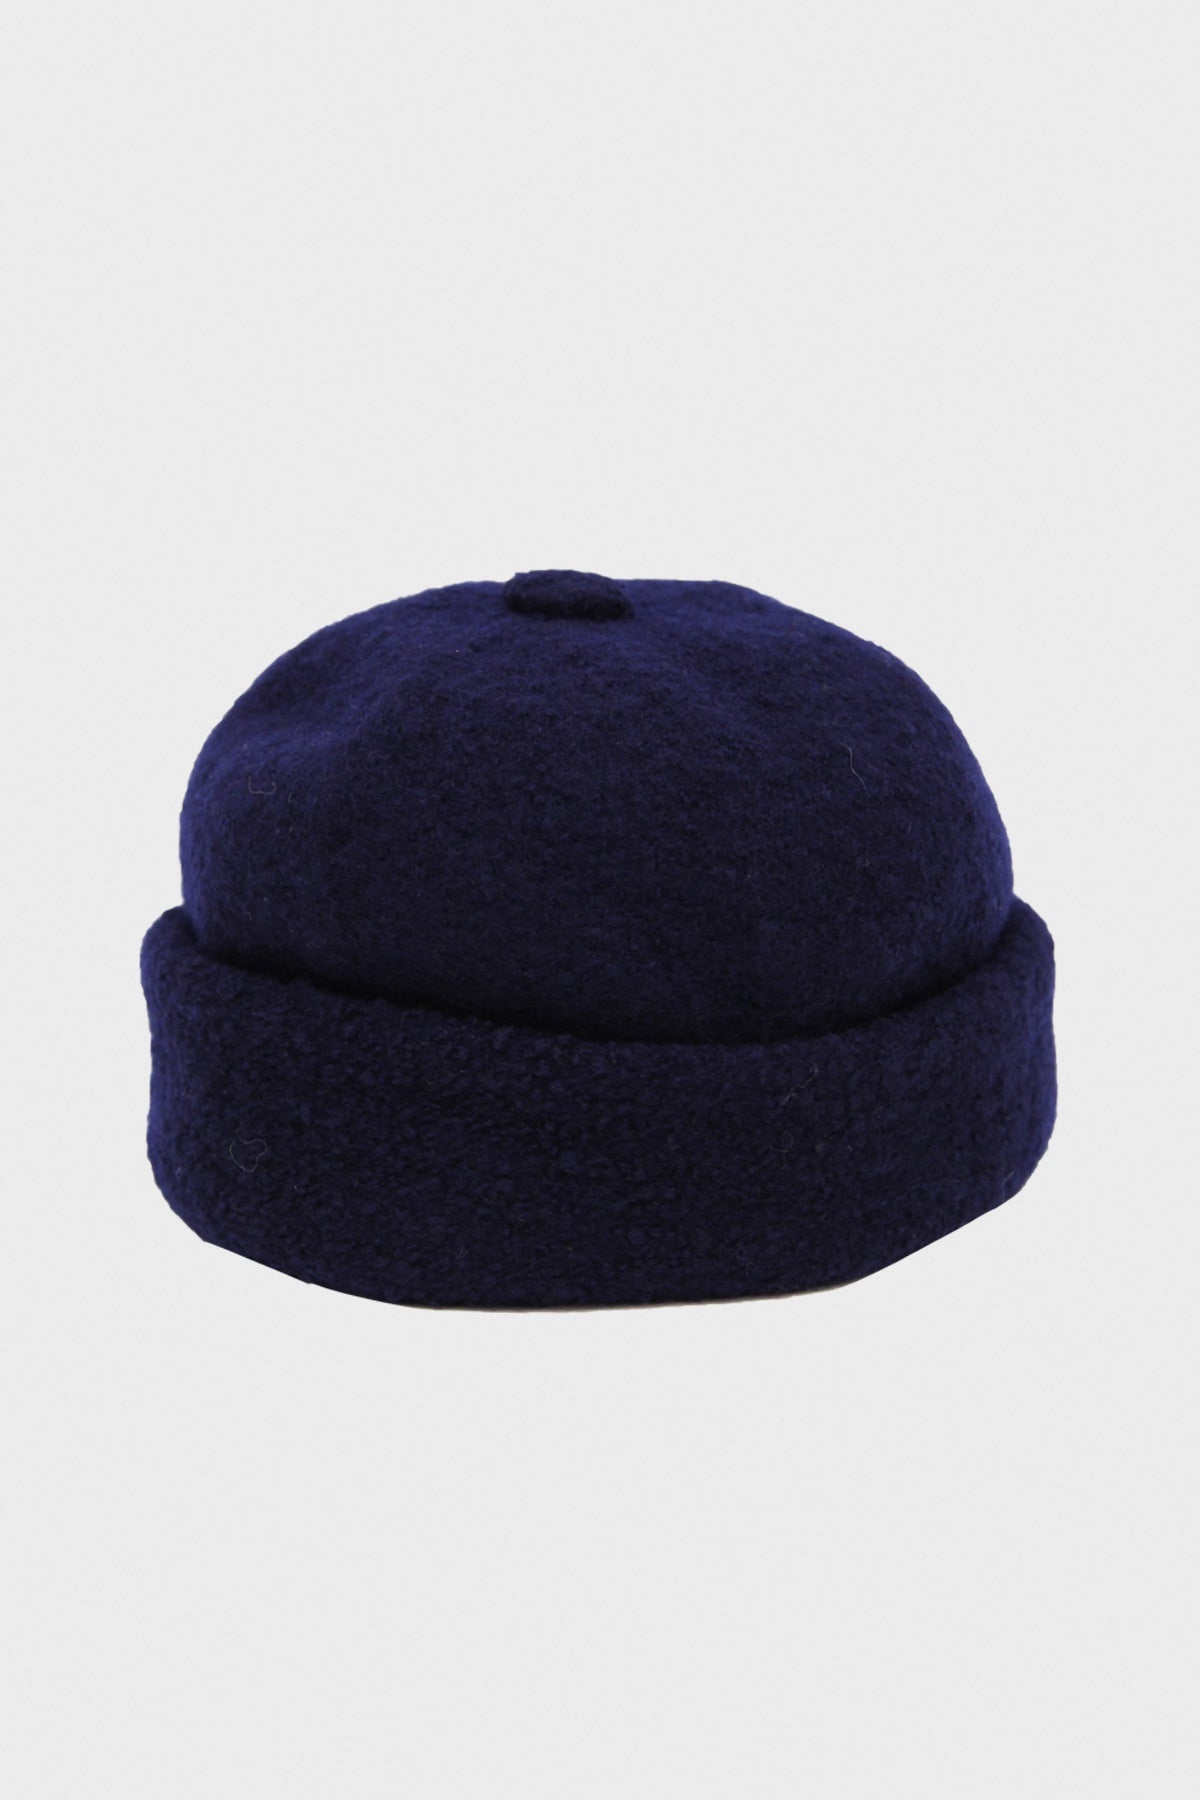 Cableami - Boiled Wool Cap - Navy - Canoe Club